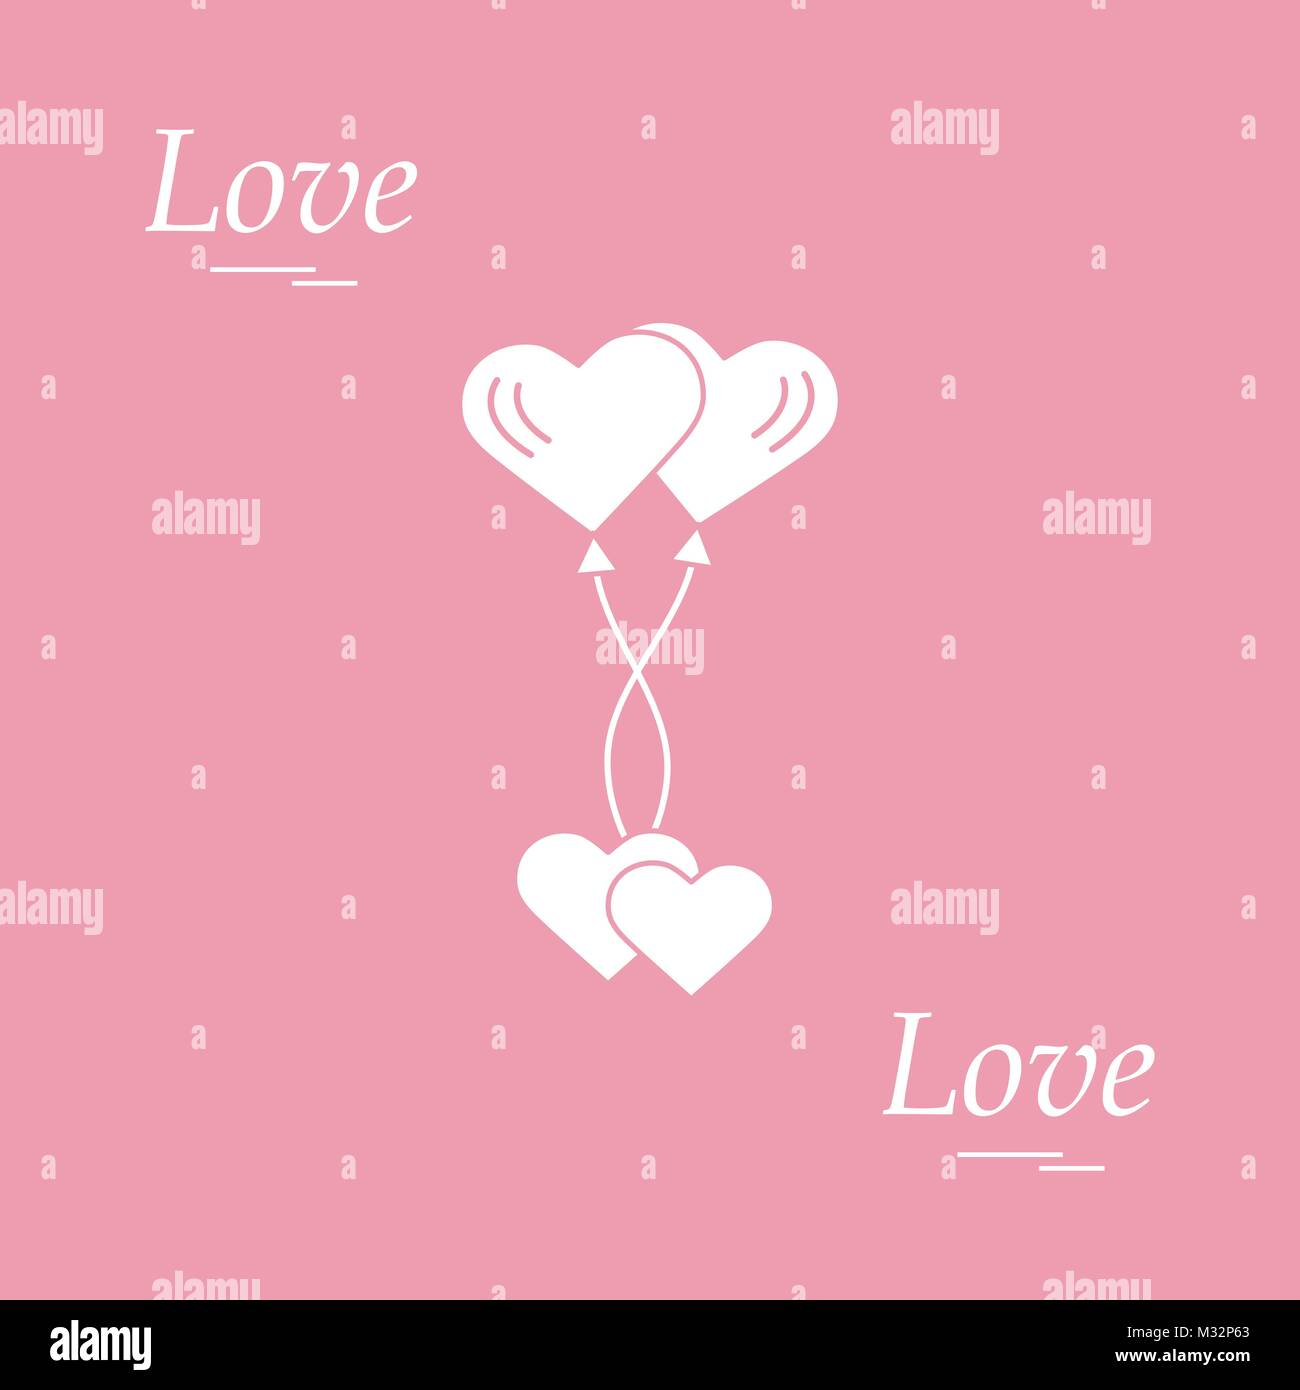 Cute vector illustration of love symbols heart air balloons icon cute vector illustration of love symbols heart air balloons icon and two hearts romantic collection design for banner flyer poster or print buycottarizona Images